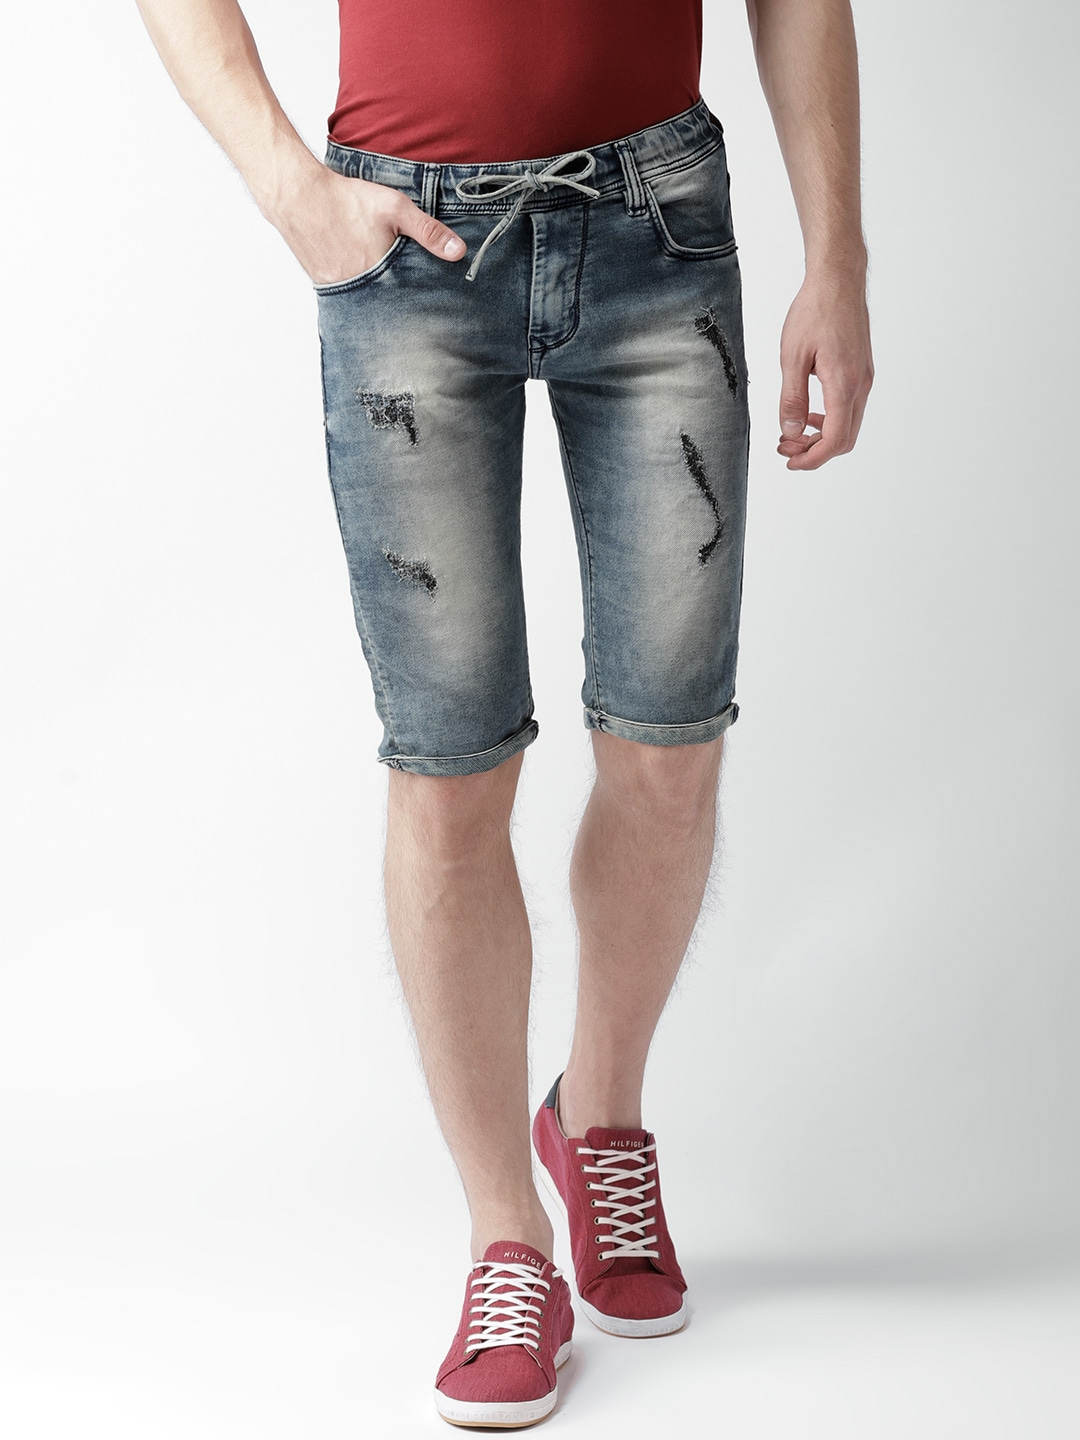 8f010f2654359 Denim Shorts - Buy Denim Shorts online in India